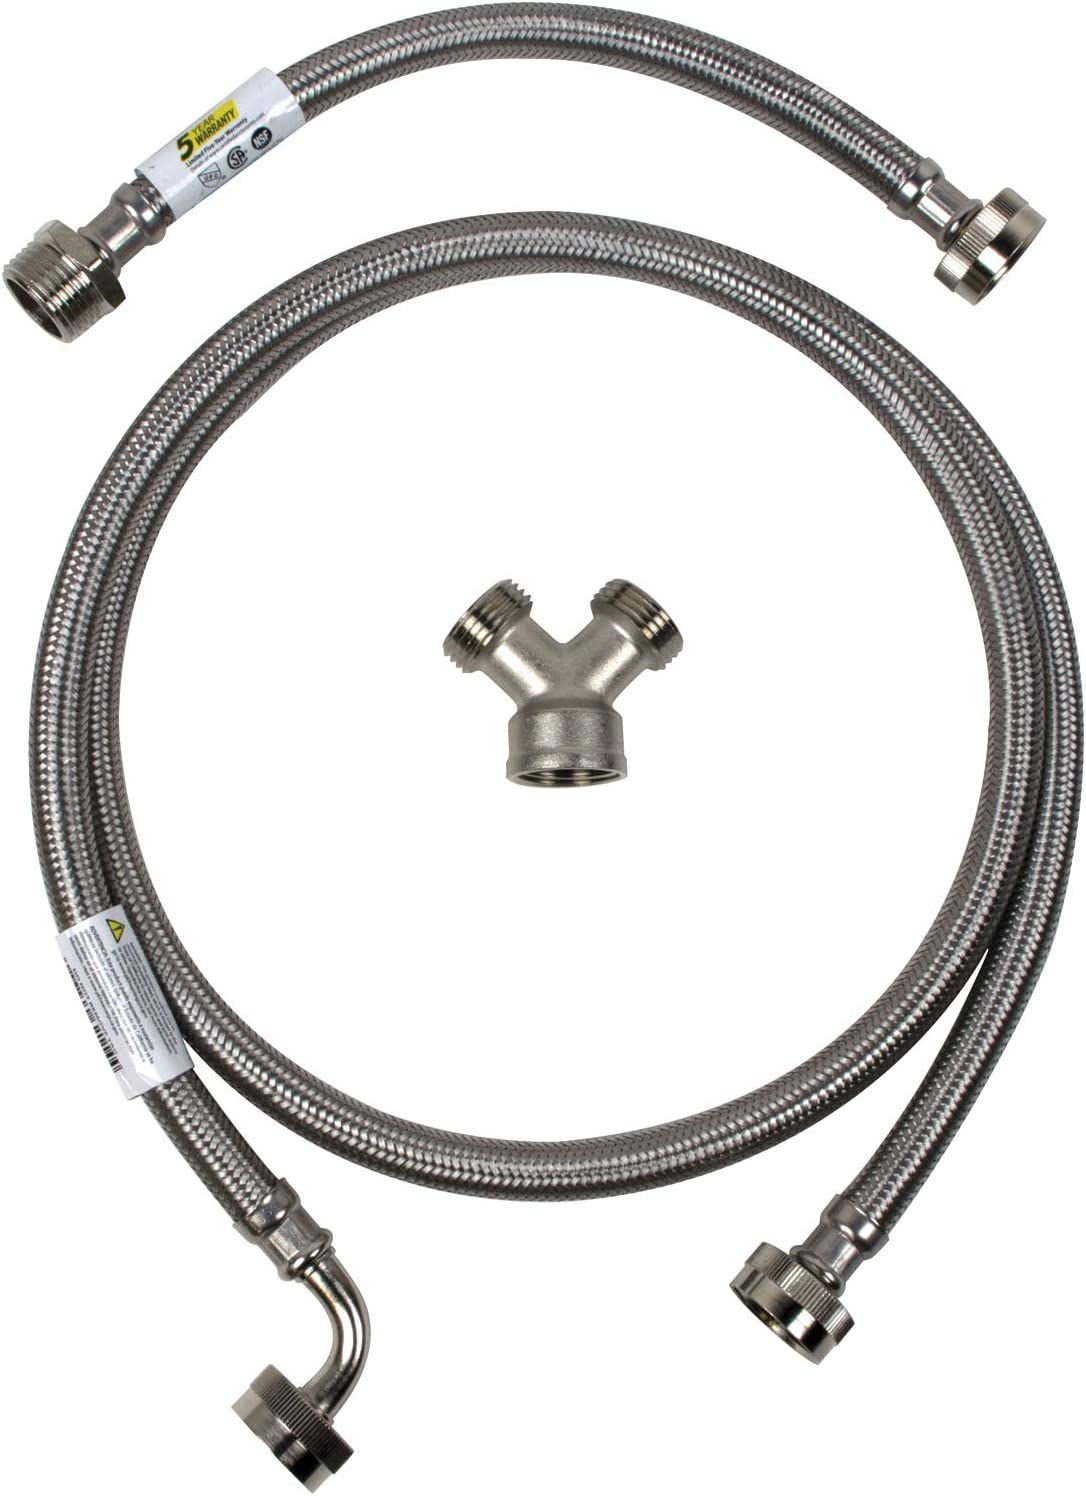 Certified Appliance Accessories Steam Dryer Installation Kit [Steam Dryer Hose with 90 Degree Elbow, Y Connector and Inlet Adapter Hose], 6 Feet